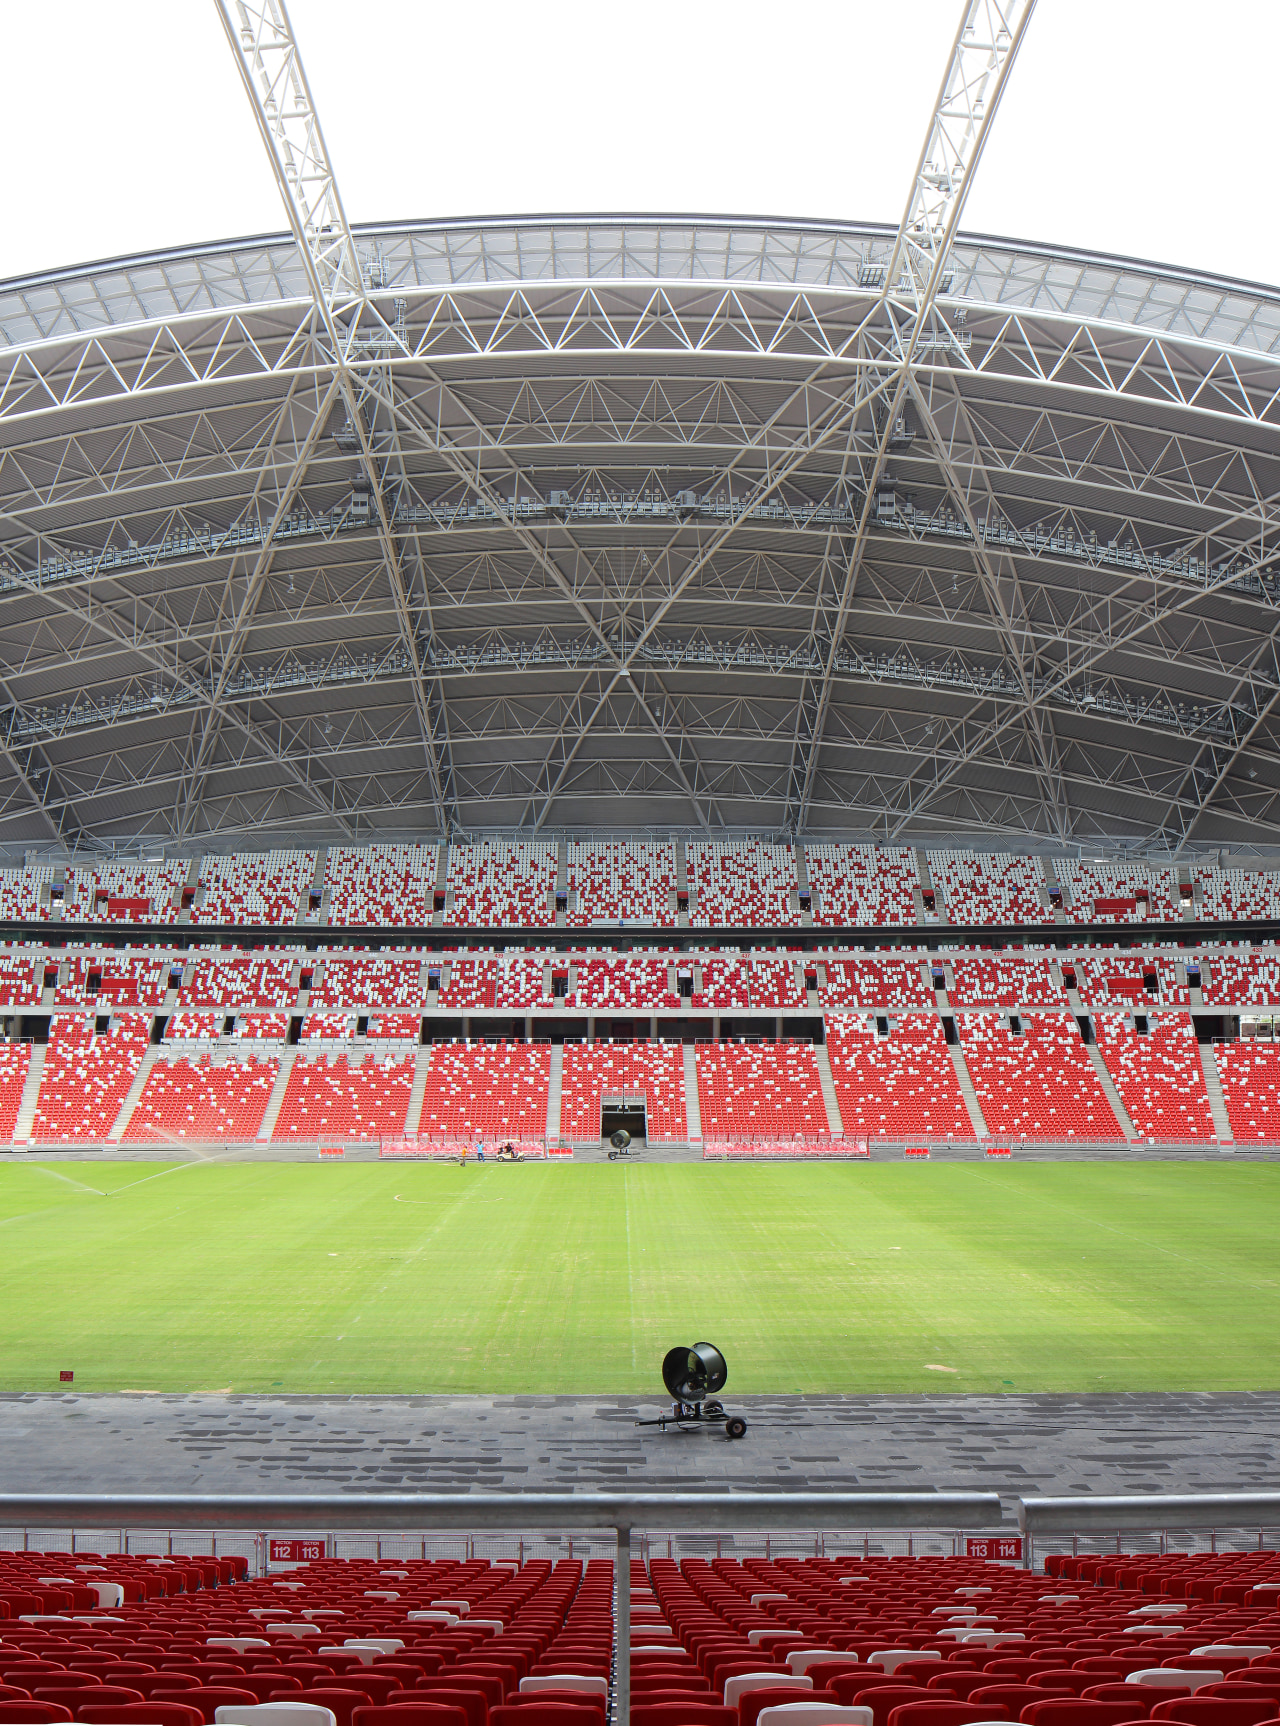 The vast size of the stadium at the area, arena, atmosphere, grass, line, soccer specific stadium, sport venue, stadium, structure, gray